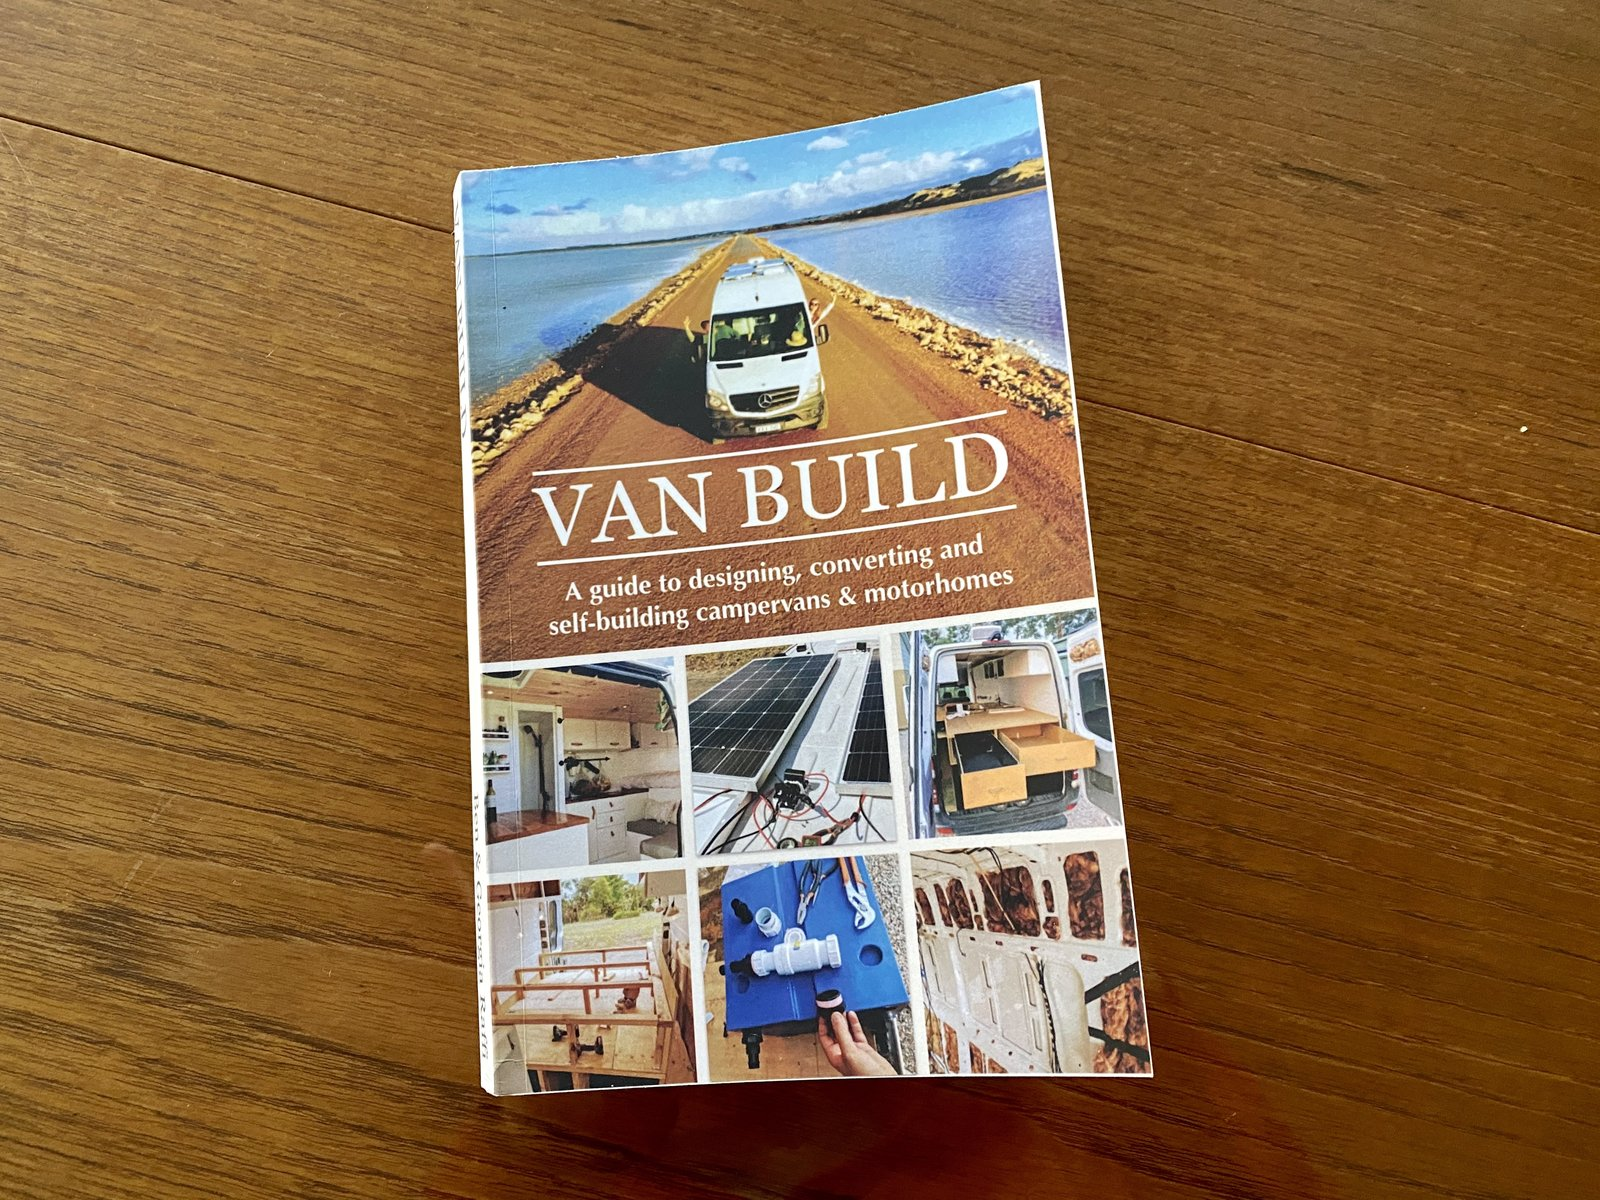 Cover of Van Build: A guide to designing, converting and self-building camper vans & motorhomes.